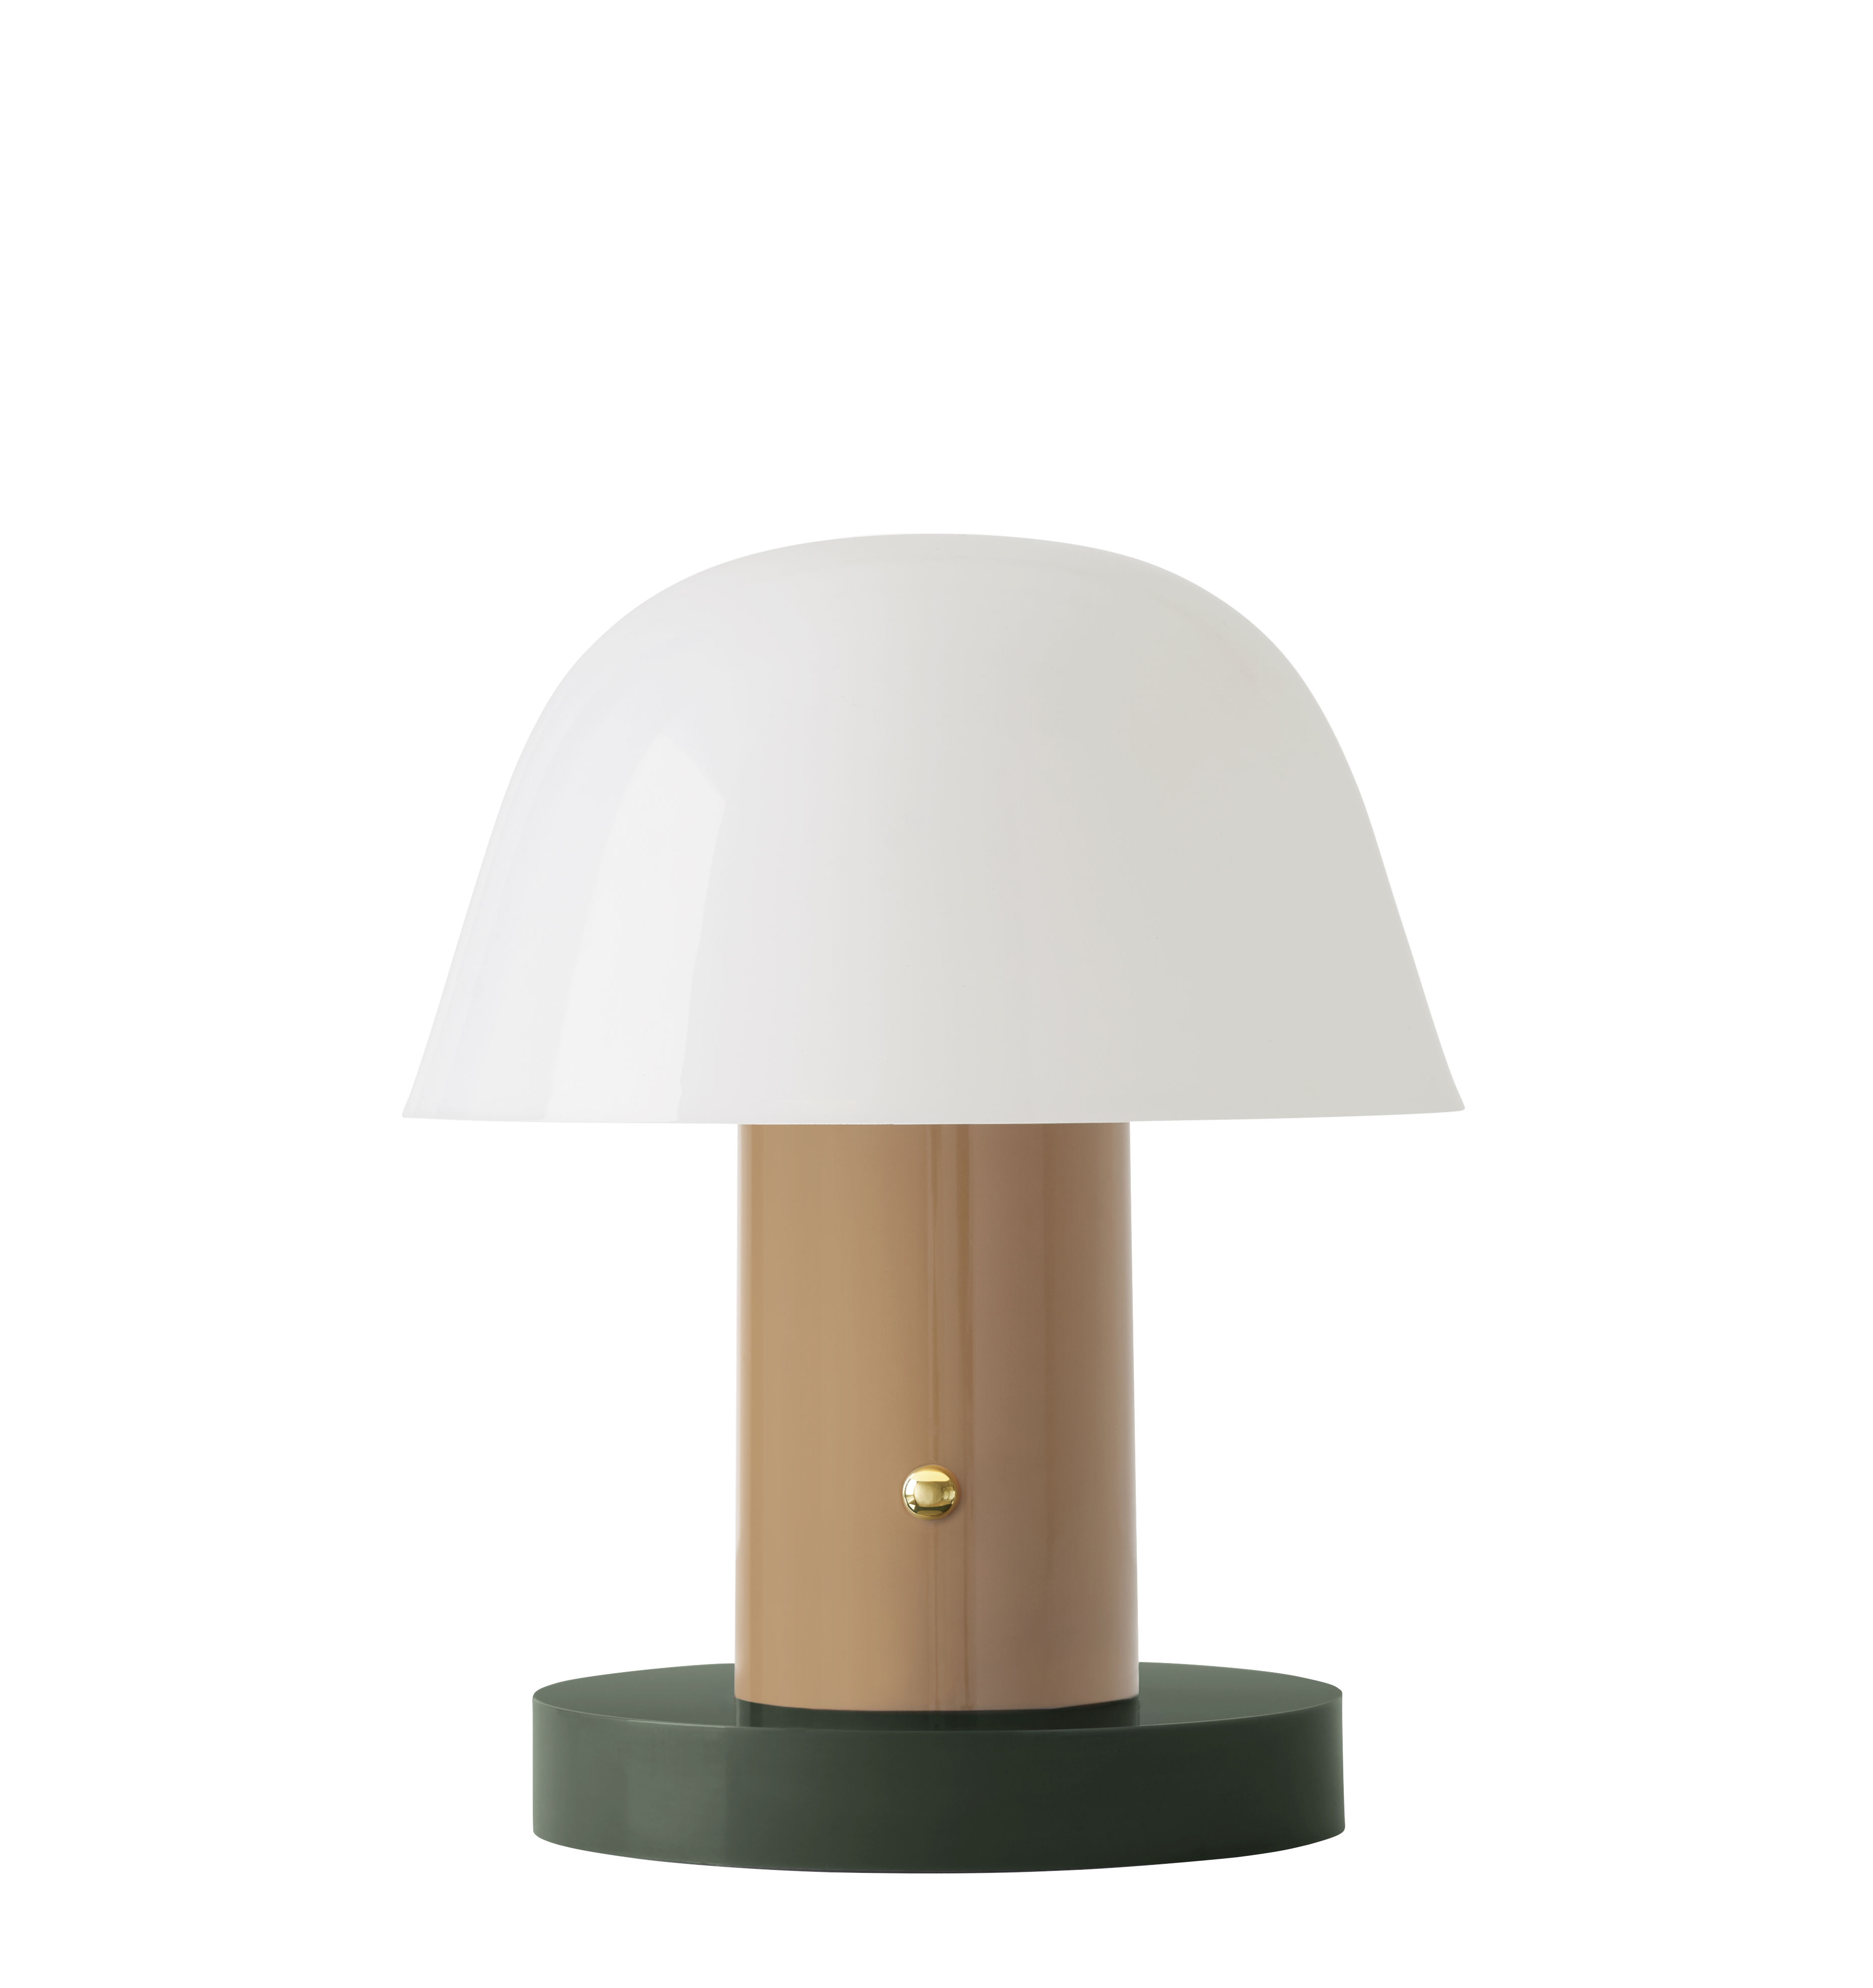 Lighting - Table Lamps - Setago  JH27 Wireless lamp - / LED - by Jaime Hayon by &tradition - Nude beige / Green base - Polycarbonate moulé